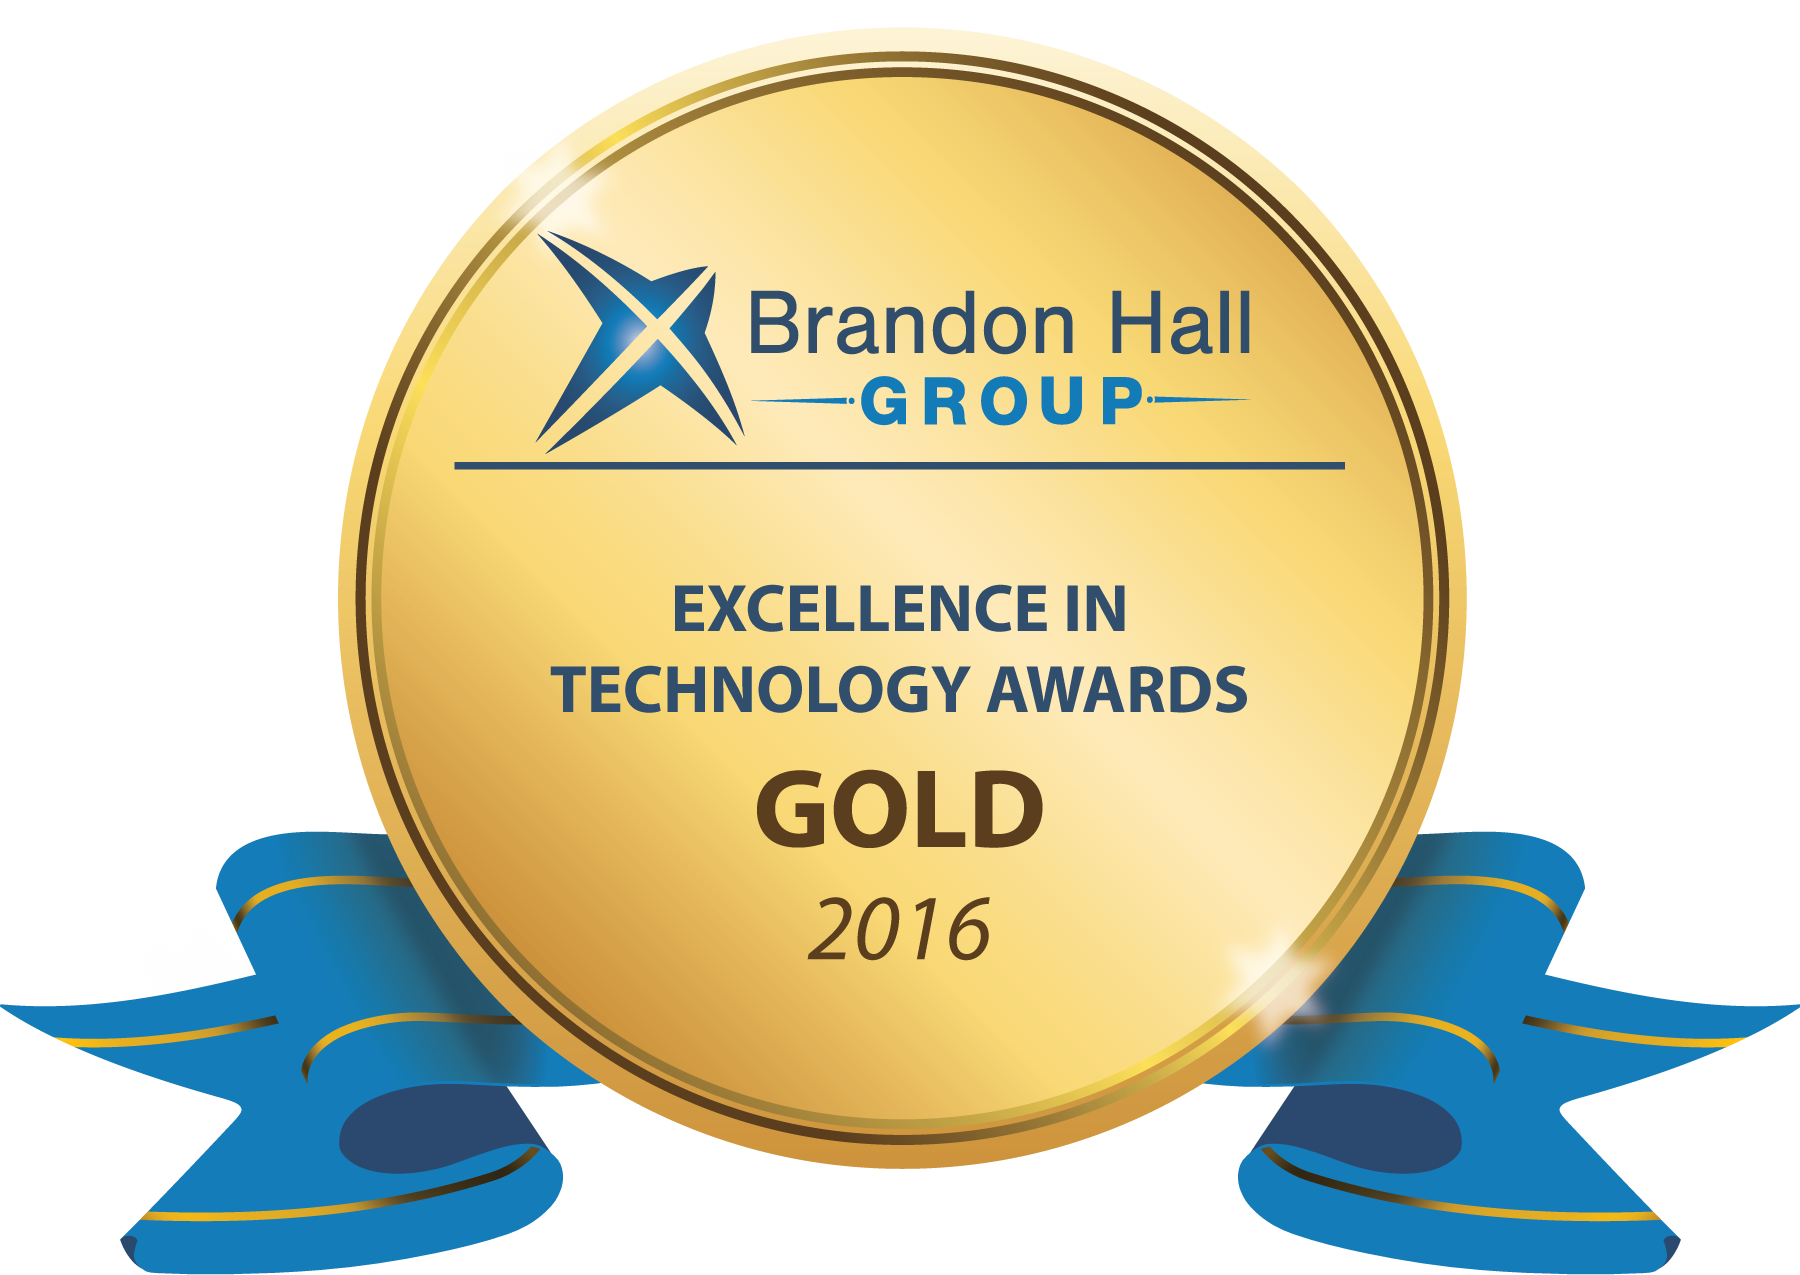 brandon-hall-gold.png